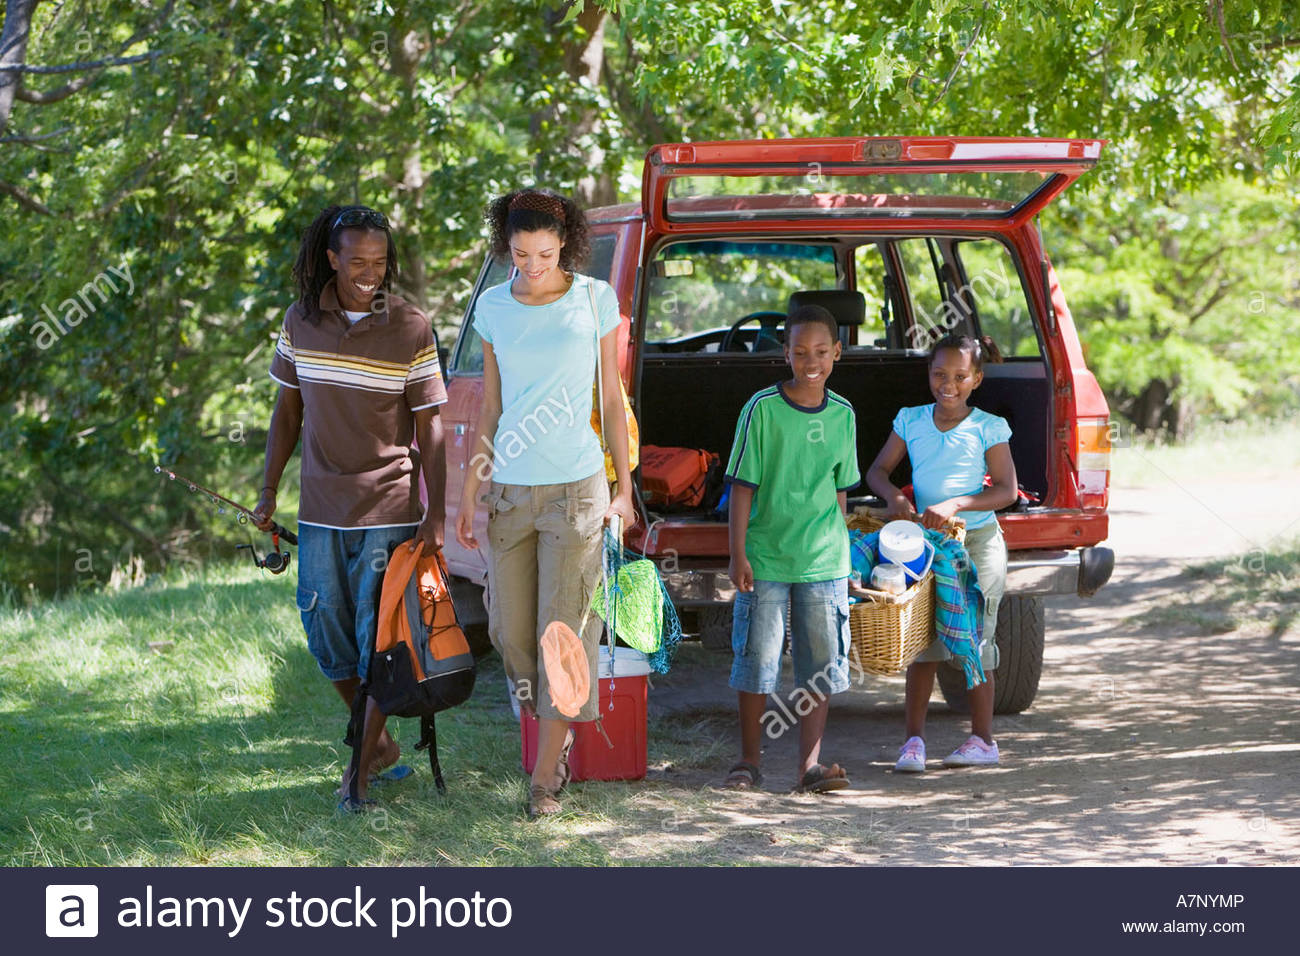 Family unloading parked SUV on camping trip children 7 10 carrying picnic hamper smiling portrait - Stock Image